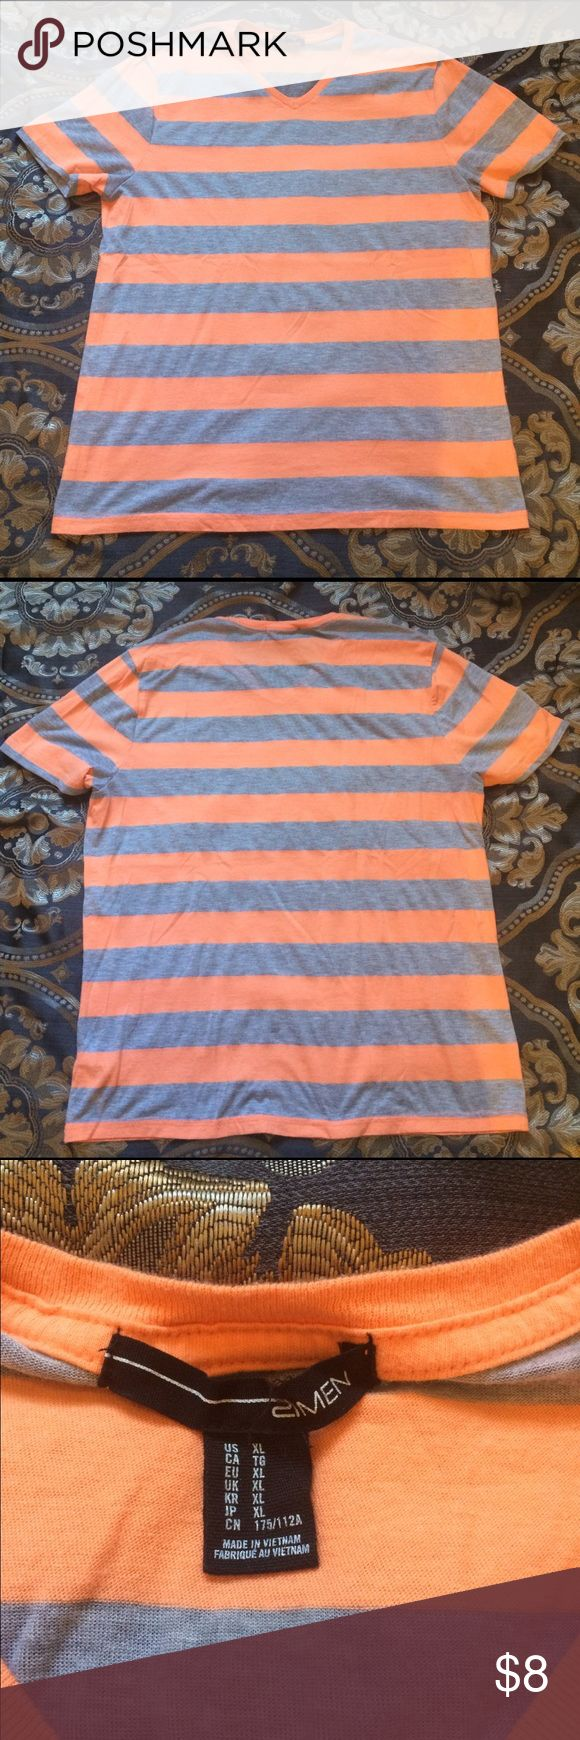 Grey and orange striped shirt Shirt says xl but it's from forever 21 men so it fits like a typical large. Only worn once. 21men Shirts Tees - Short Sleeve